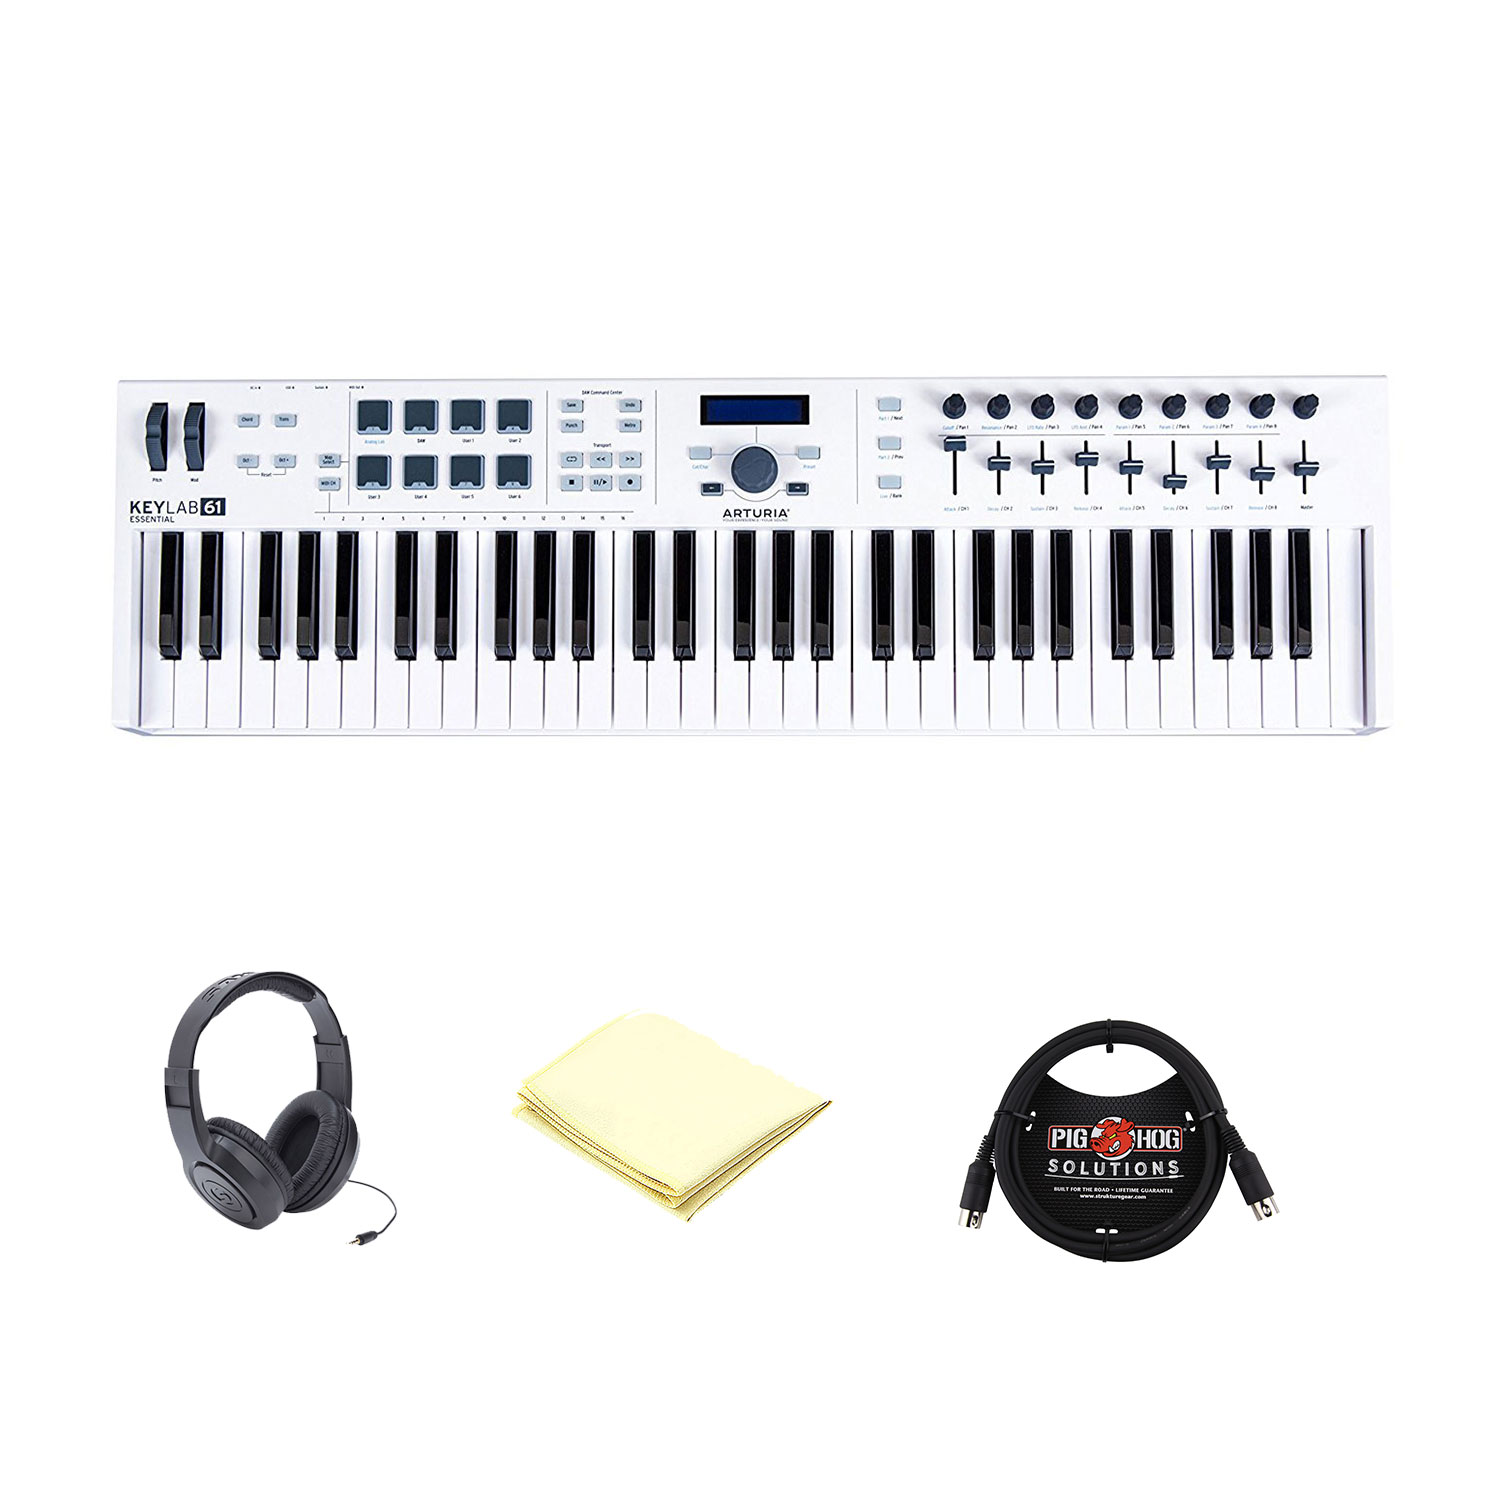 Arturia KeyLab 61 Essential 61-Note USB MIDI Controller Keyboard with Extensive Hands-on Controls w/ Open Ear Headphone, Midi Cable and Midi Keyboard Polishing Cloth